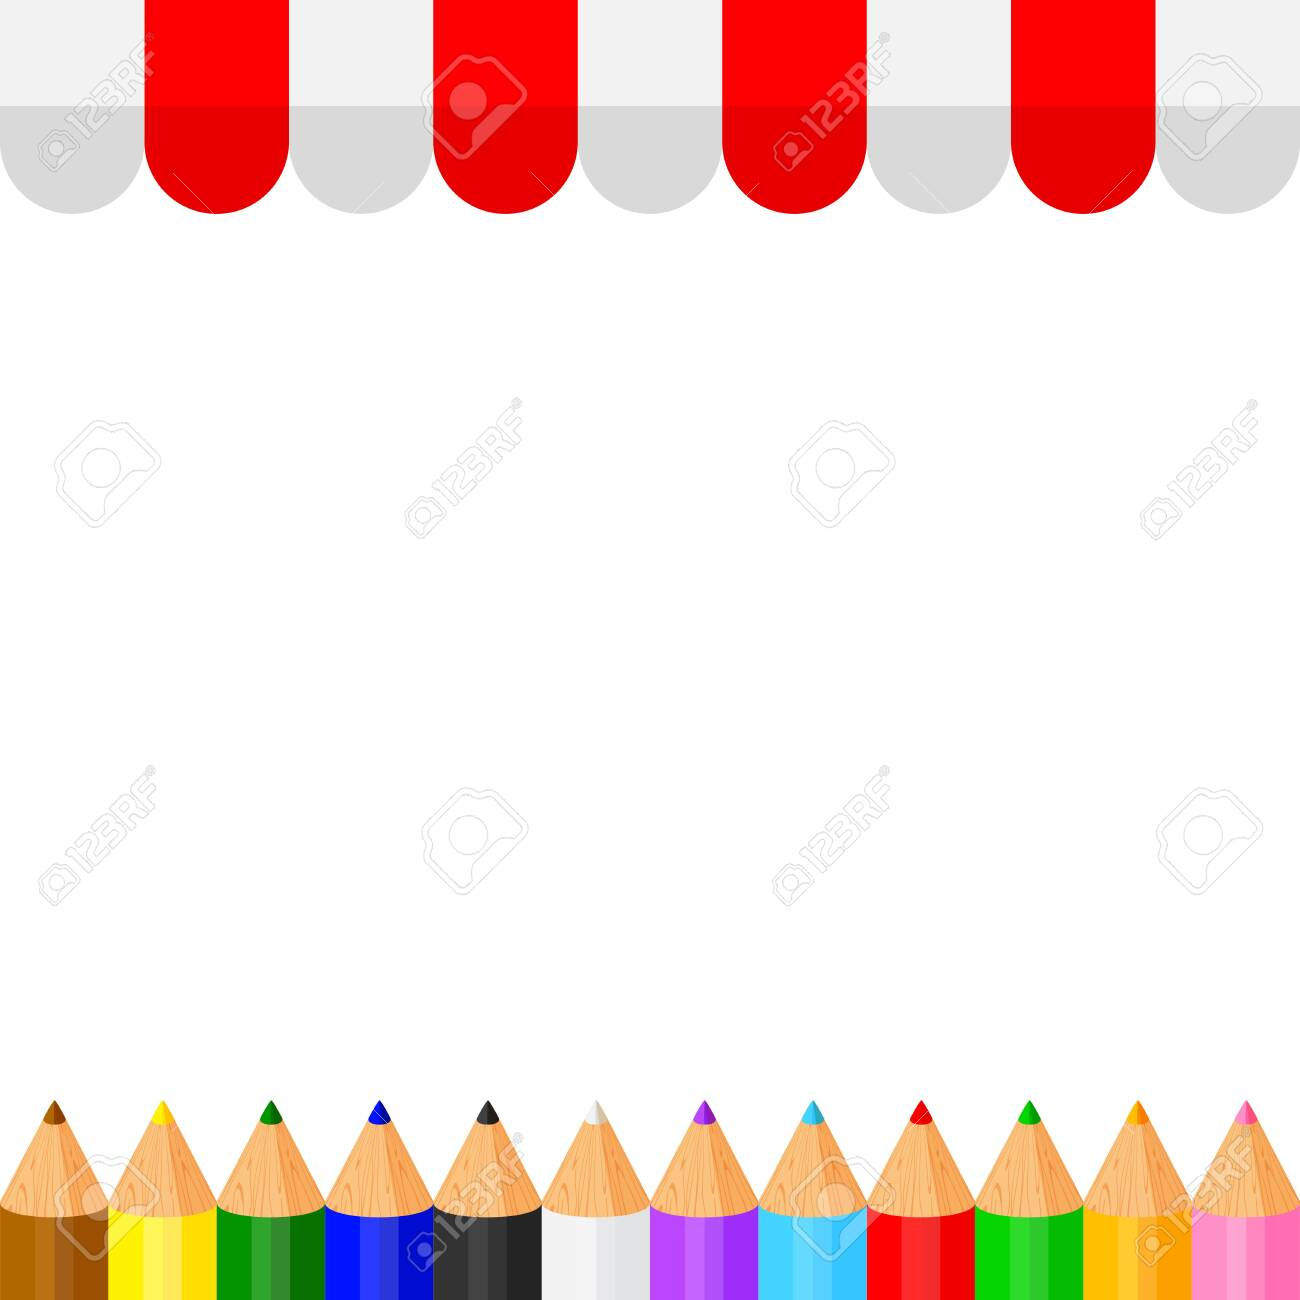 Colorful Crayon Pastel Pencils Cute In A Row On Banner Awning Royalty Free Cliparts Vectors And Stock Illustration Image 143962202